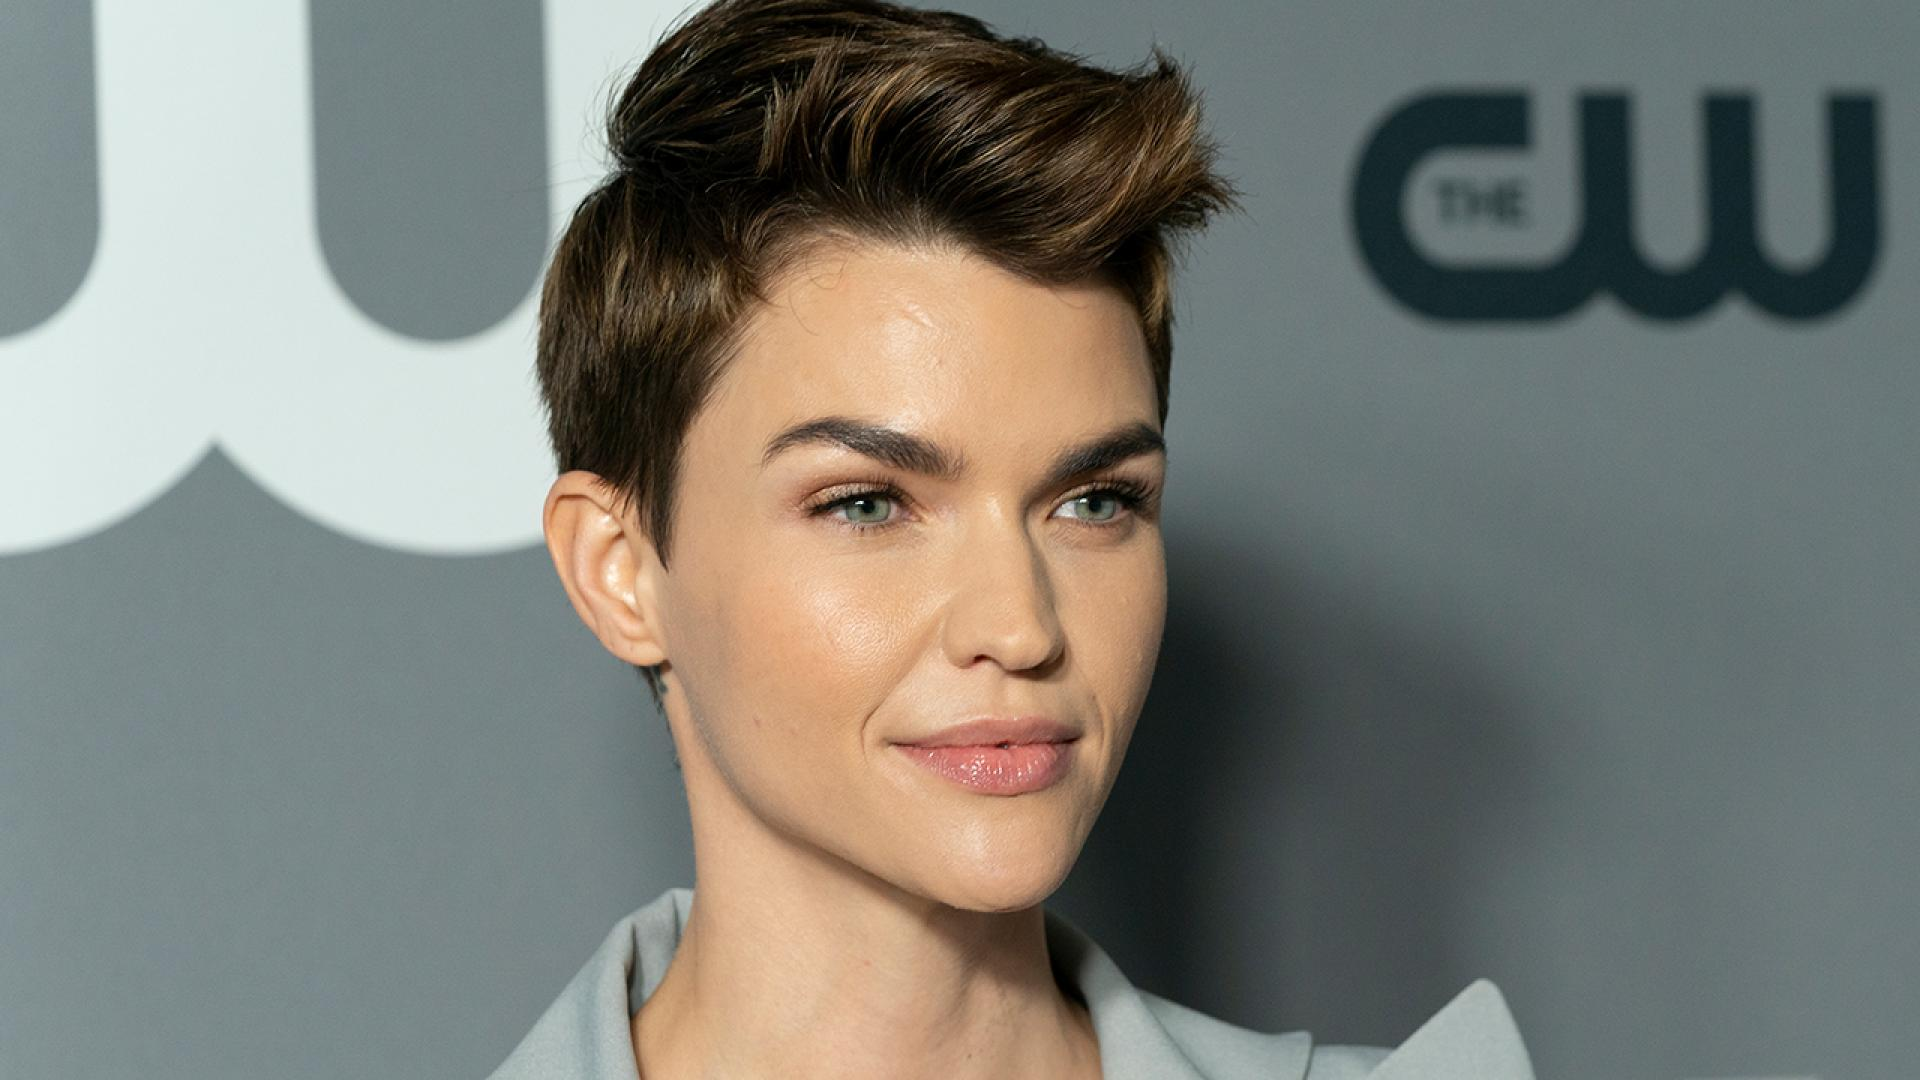 Ruby Rose revealed she underwent emergency surgery to heal an injury that almost left her paralyzed.